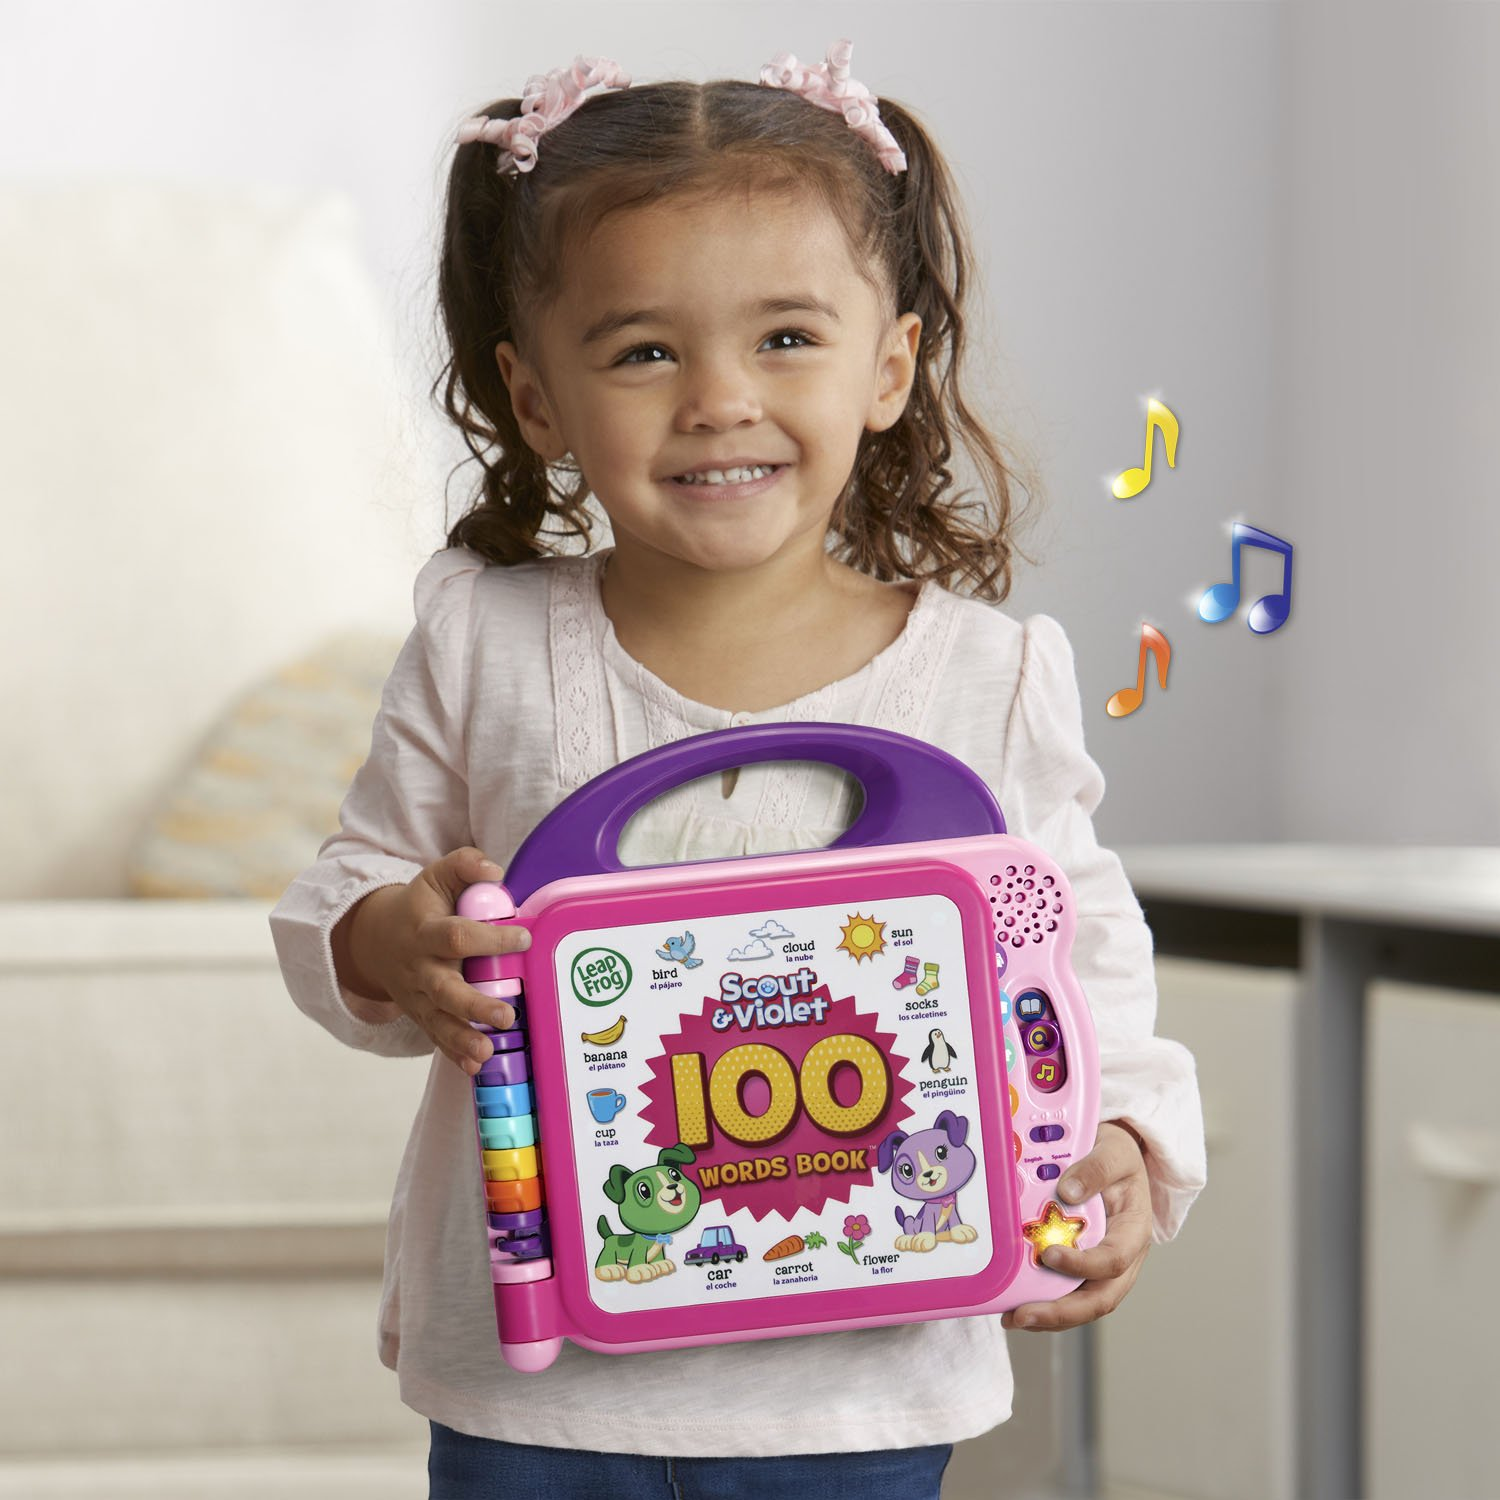 LeapFrog Scout and Violet 100 Words Book (Amazon Exclusive) by LeapFrog (Image #6)